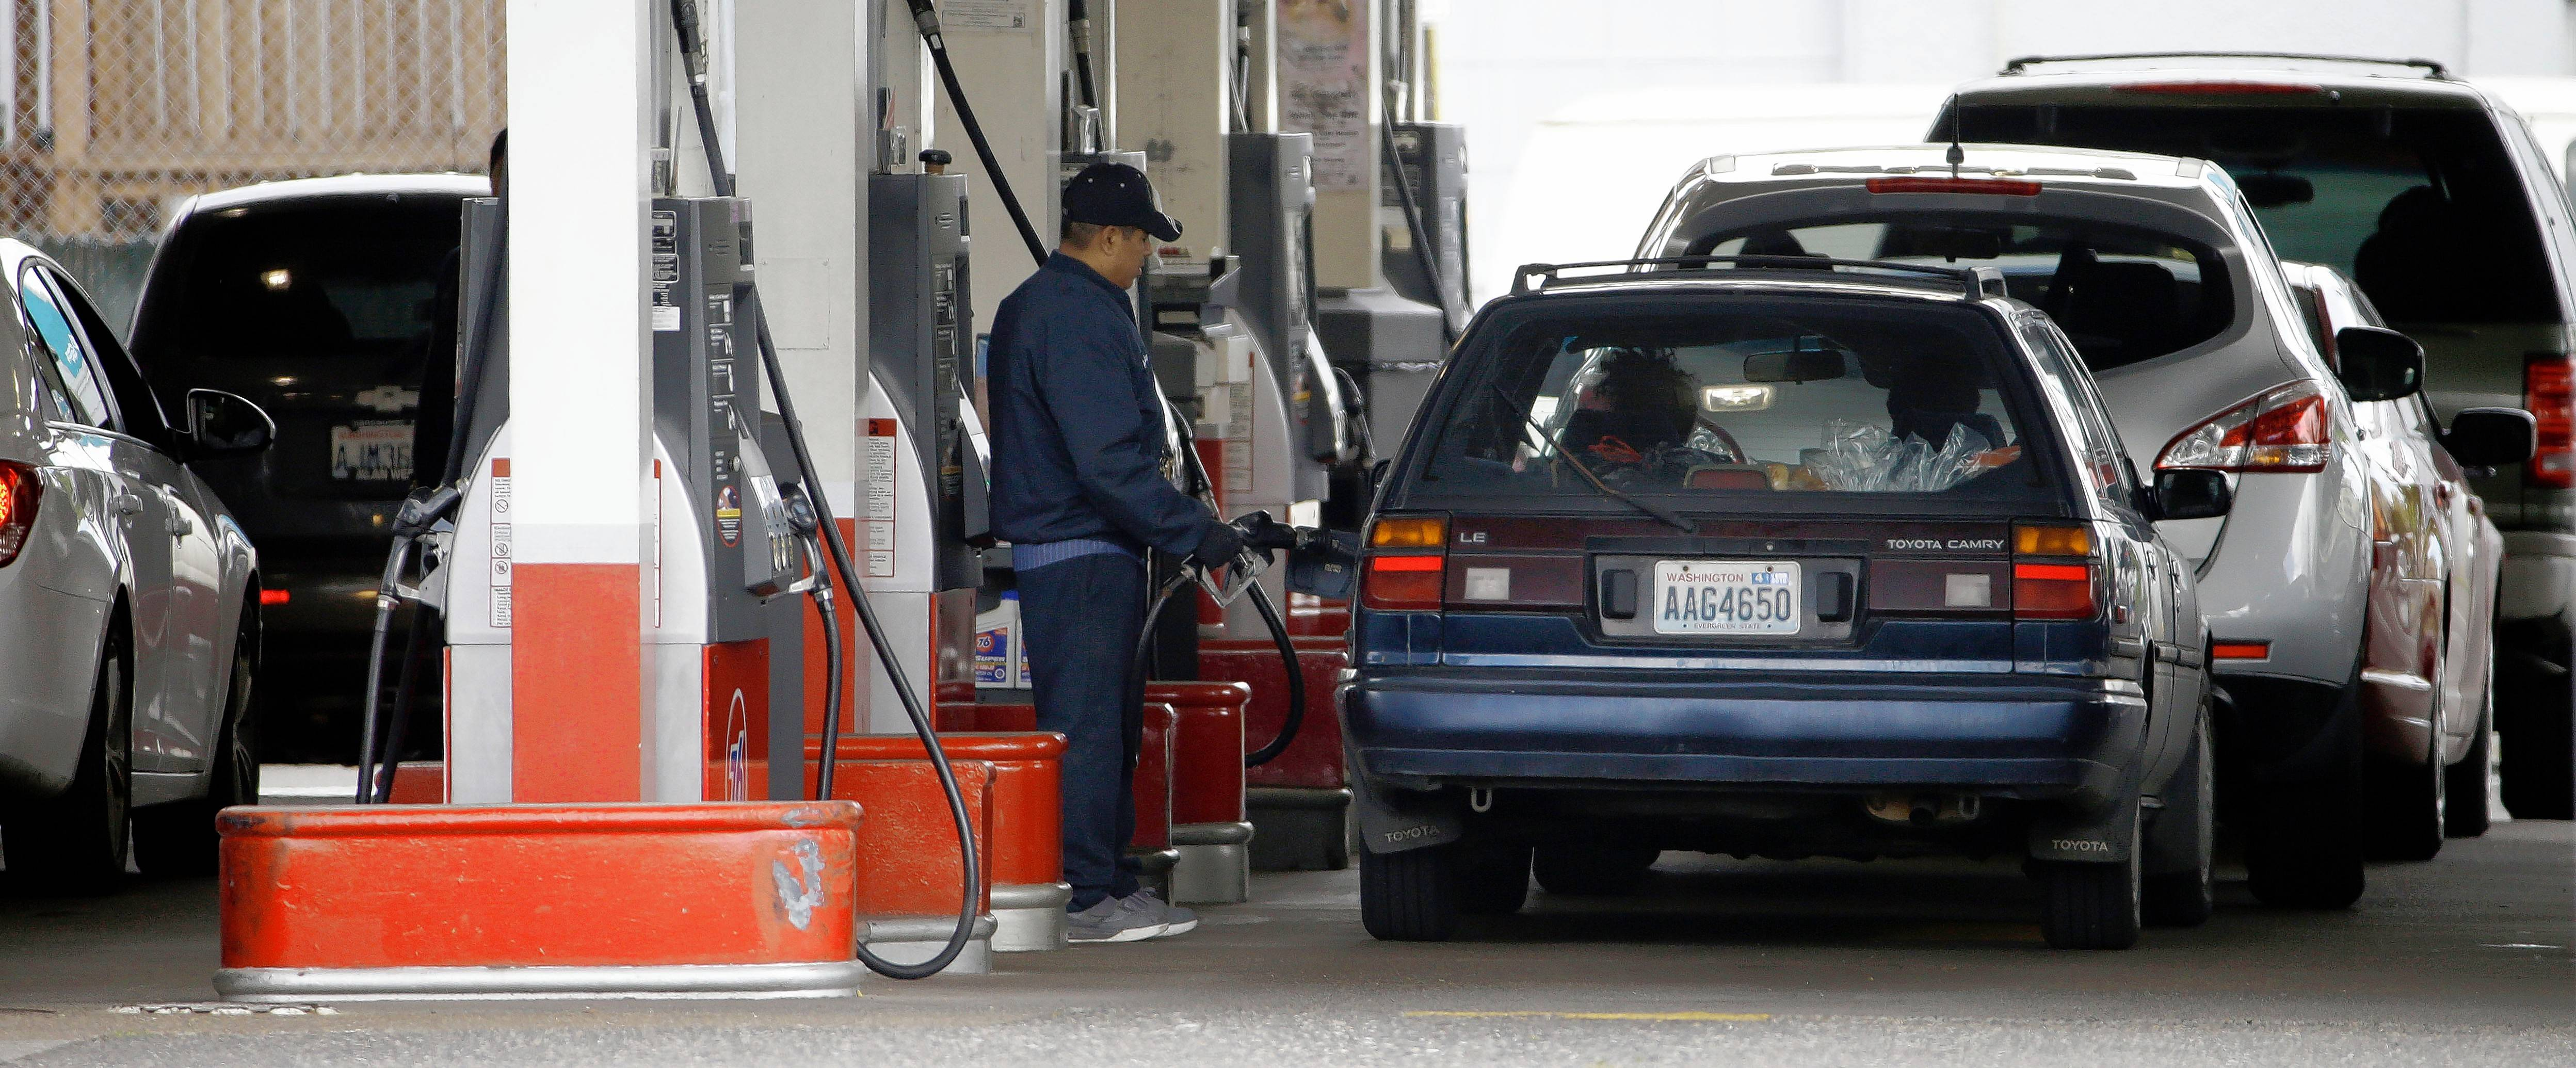 Oregon's HB 2482 does not require all gas stations in the state to have self-service pumps at all hours of the day. It simply gives retailers in sparsely populated communities, or about half of the states' counties, the option to do so — and some have said they will continue their business practices regardless of the law.